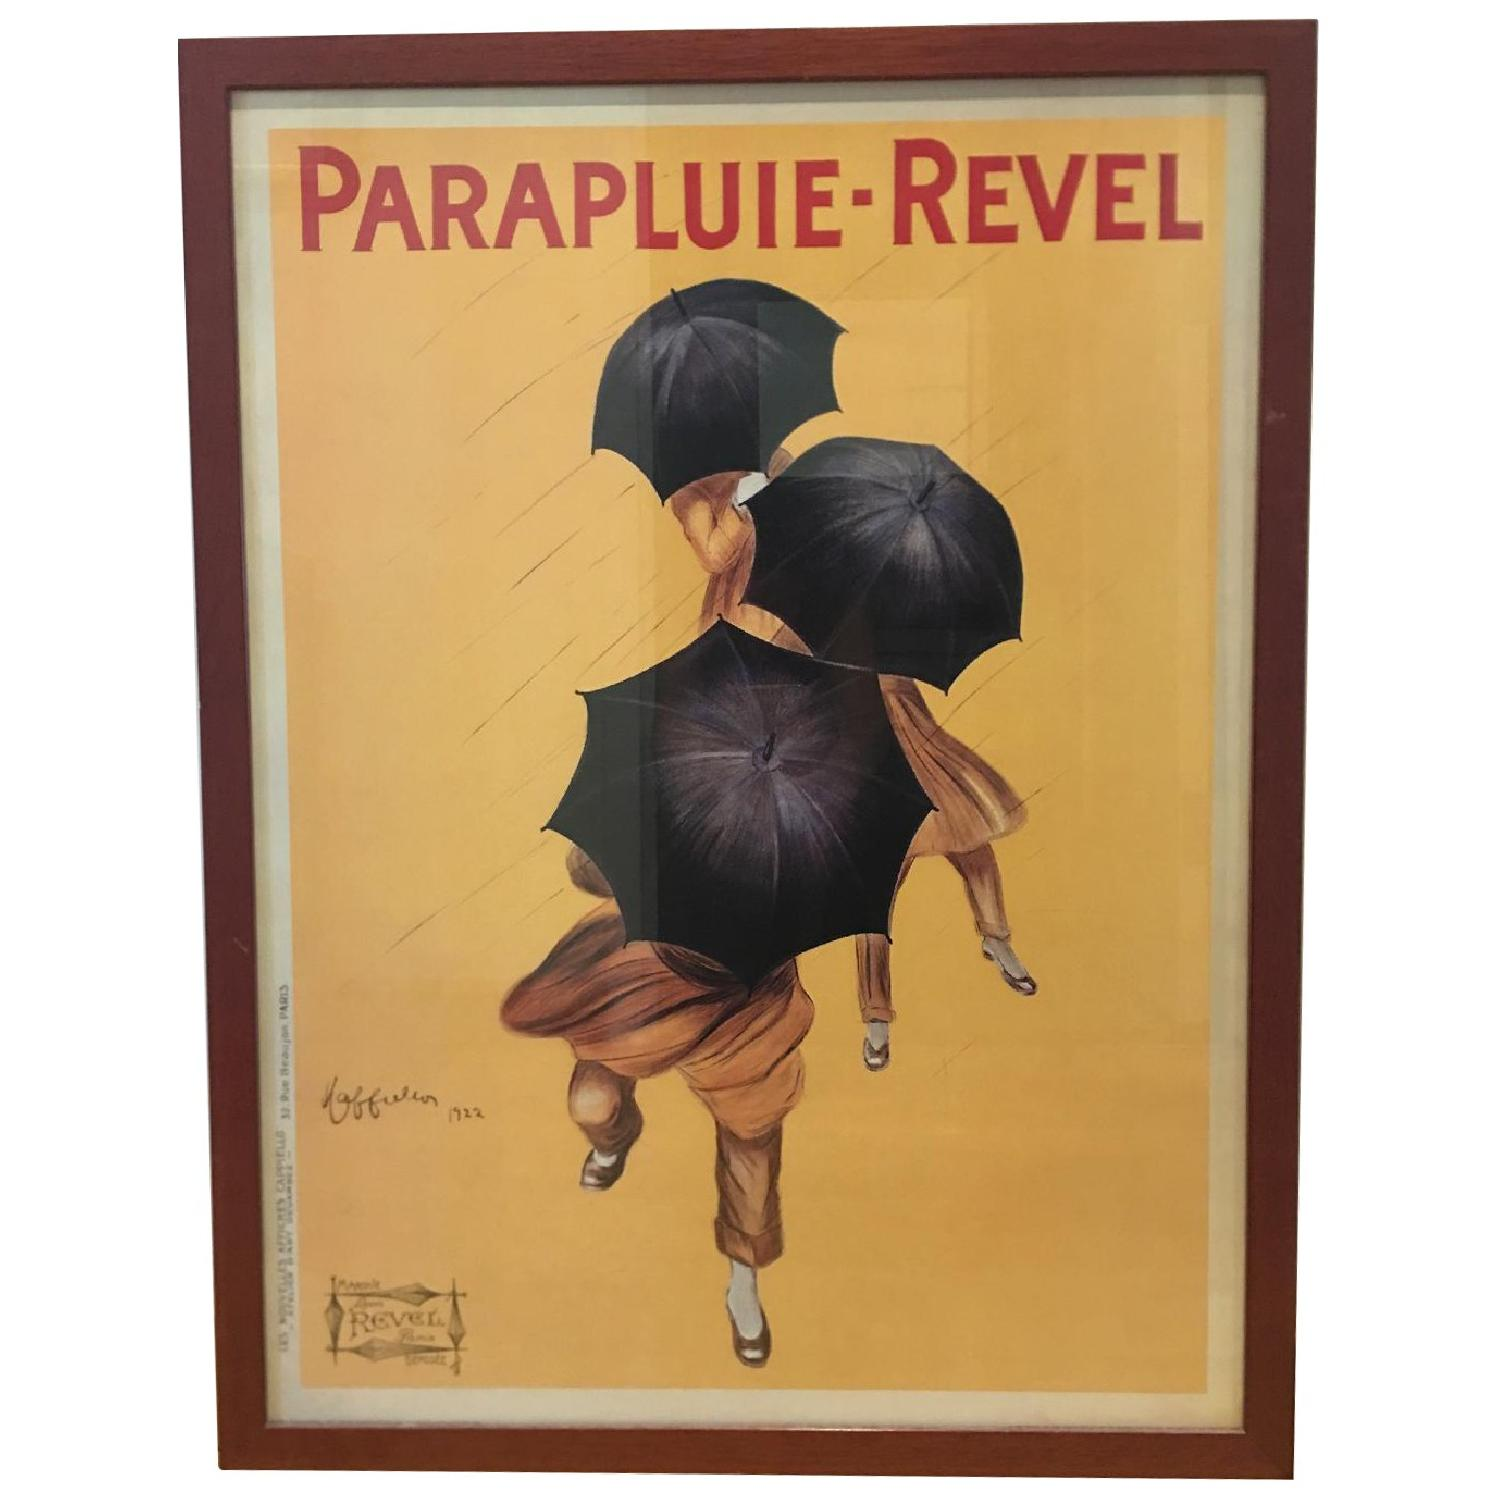 Vintage 1922 by Leonetto Cappiello Framed Parapluie-Revel - image-0